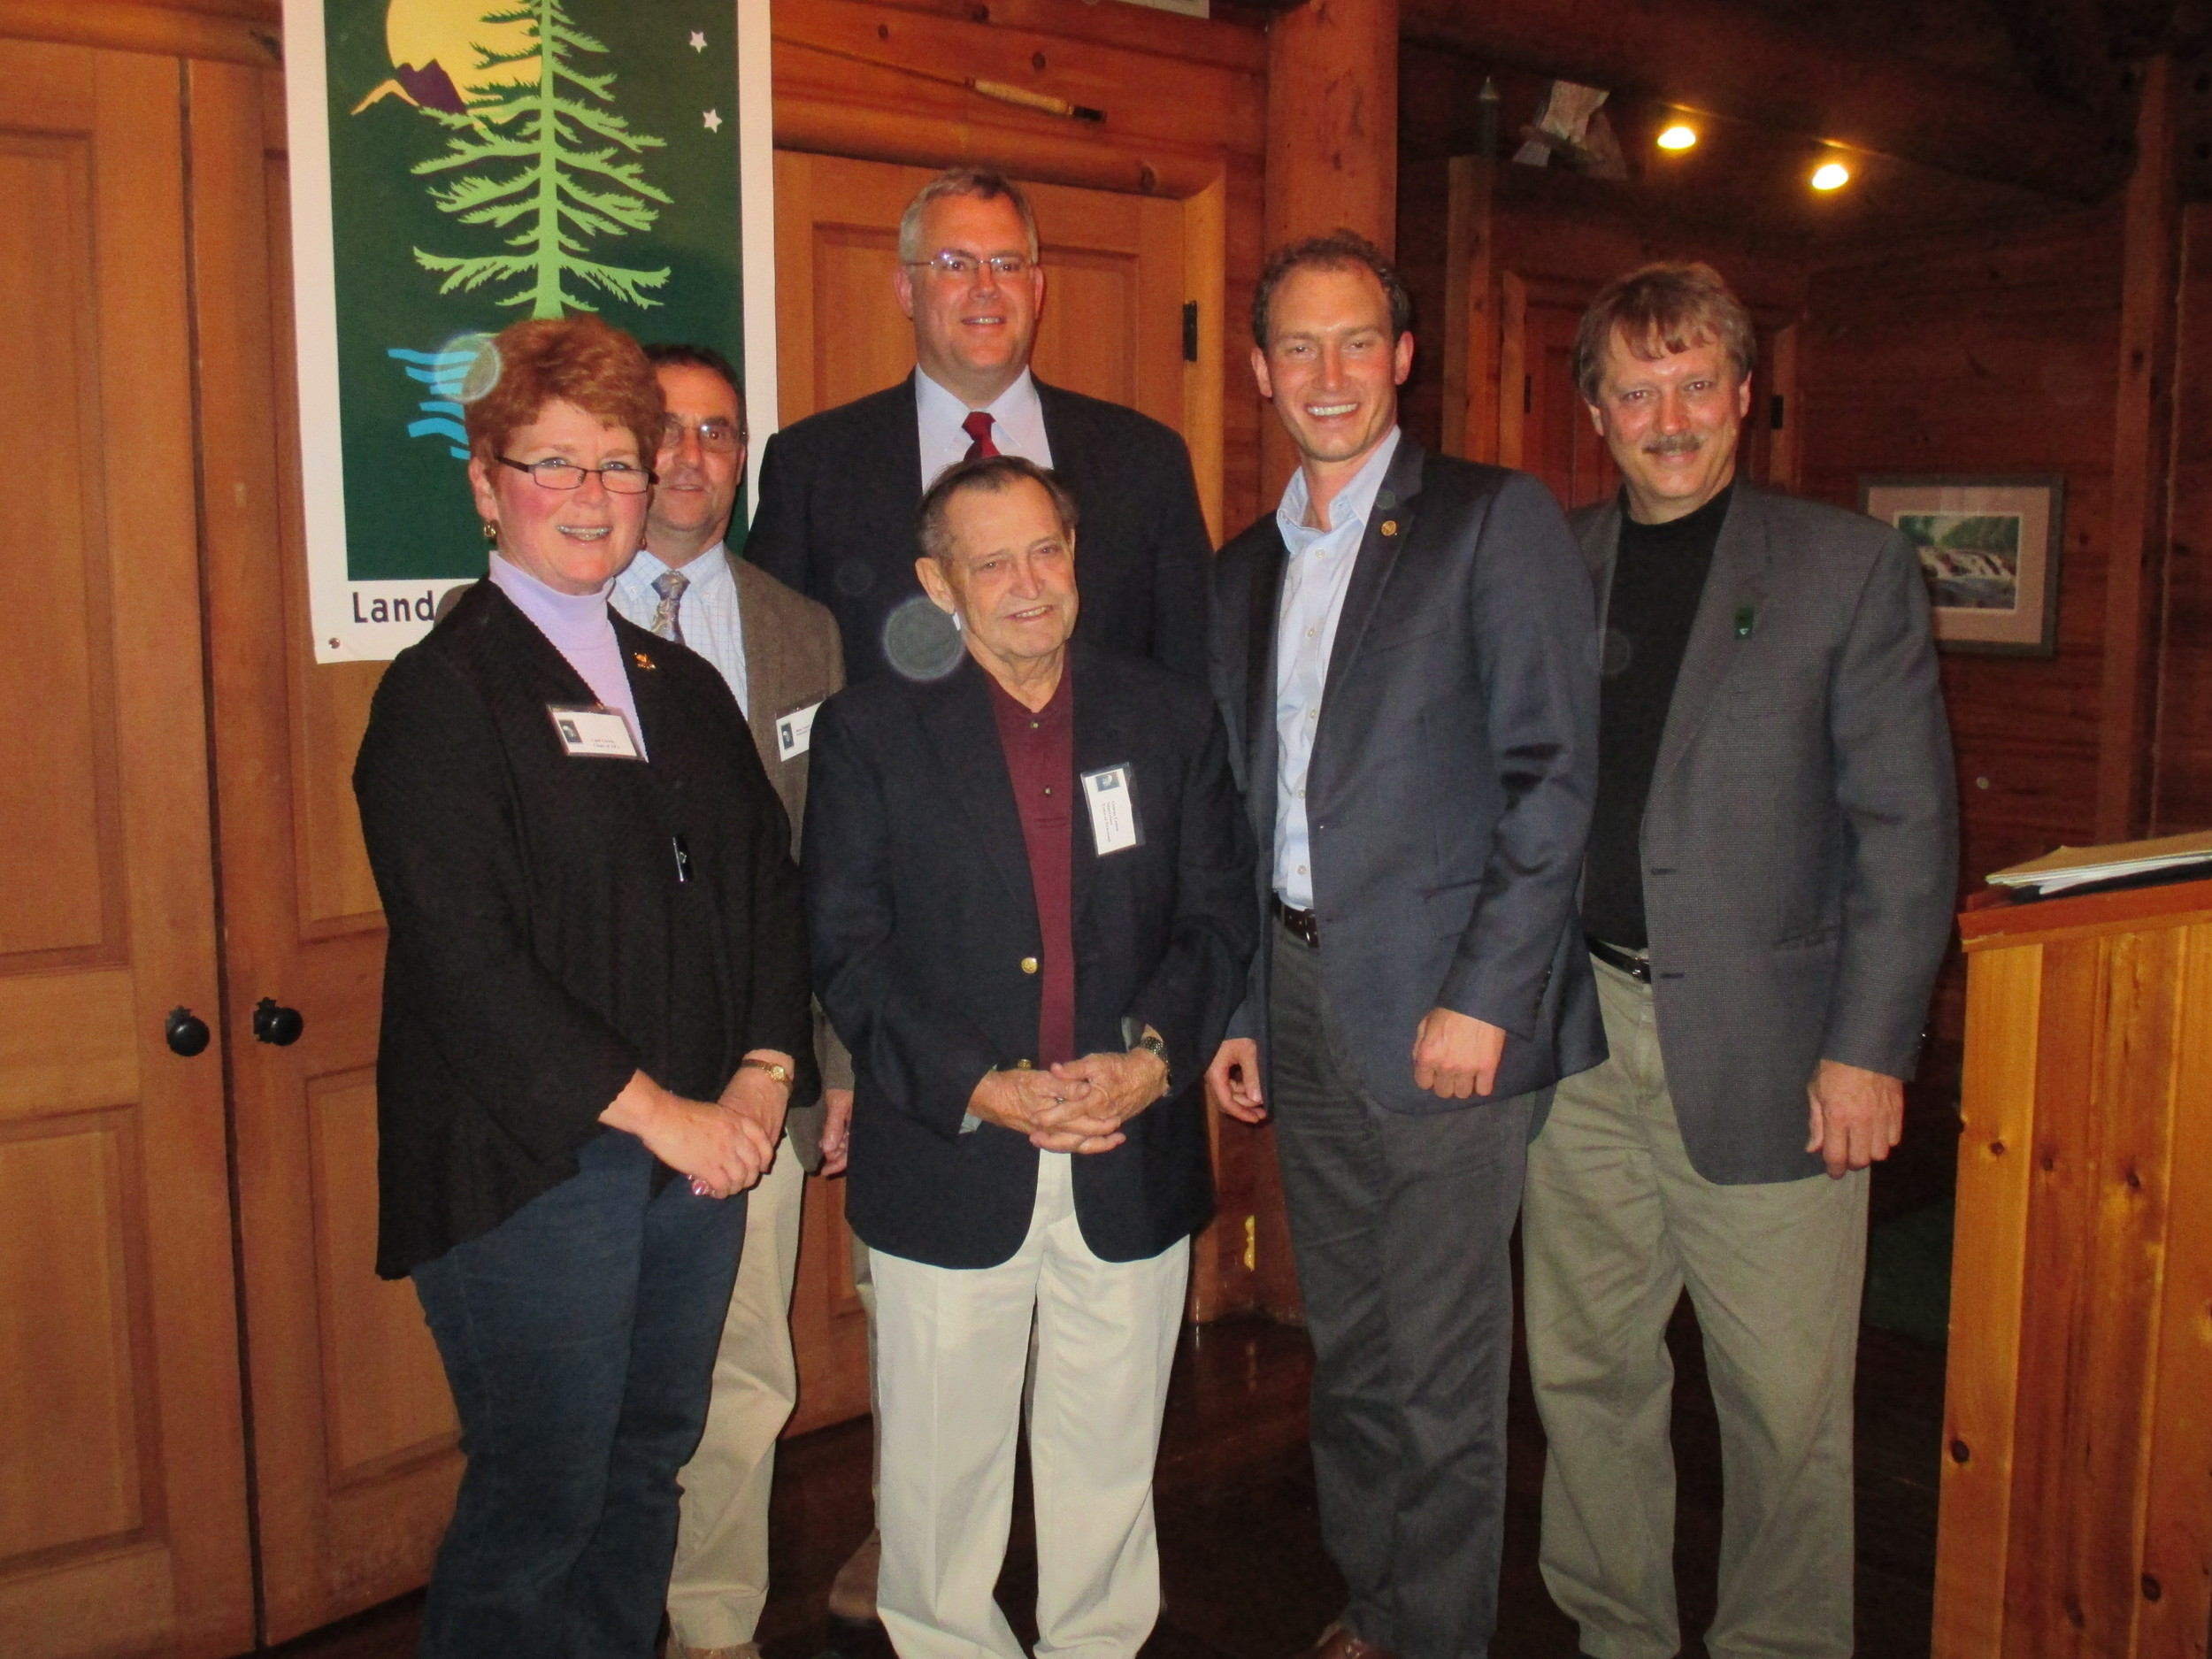 [l-r] APA Chairwoman, Lani Ulrich, AATV President, Brian Towers, Newcomb Supervisor, George Canon, Asst. Secretary for the Environment, Peter Walke, NYS Assemblyman, Dan Stec and ALA President, Tom Williams